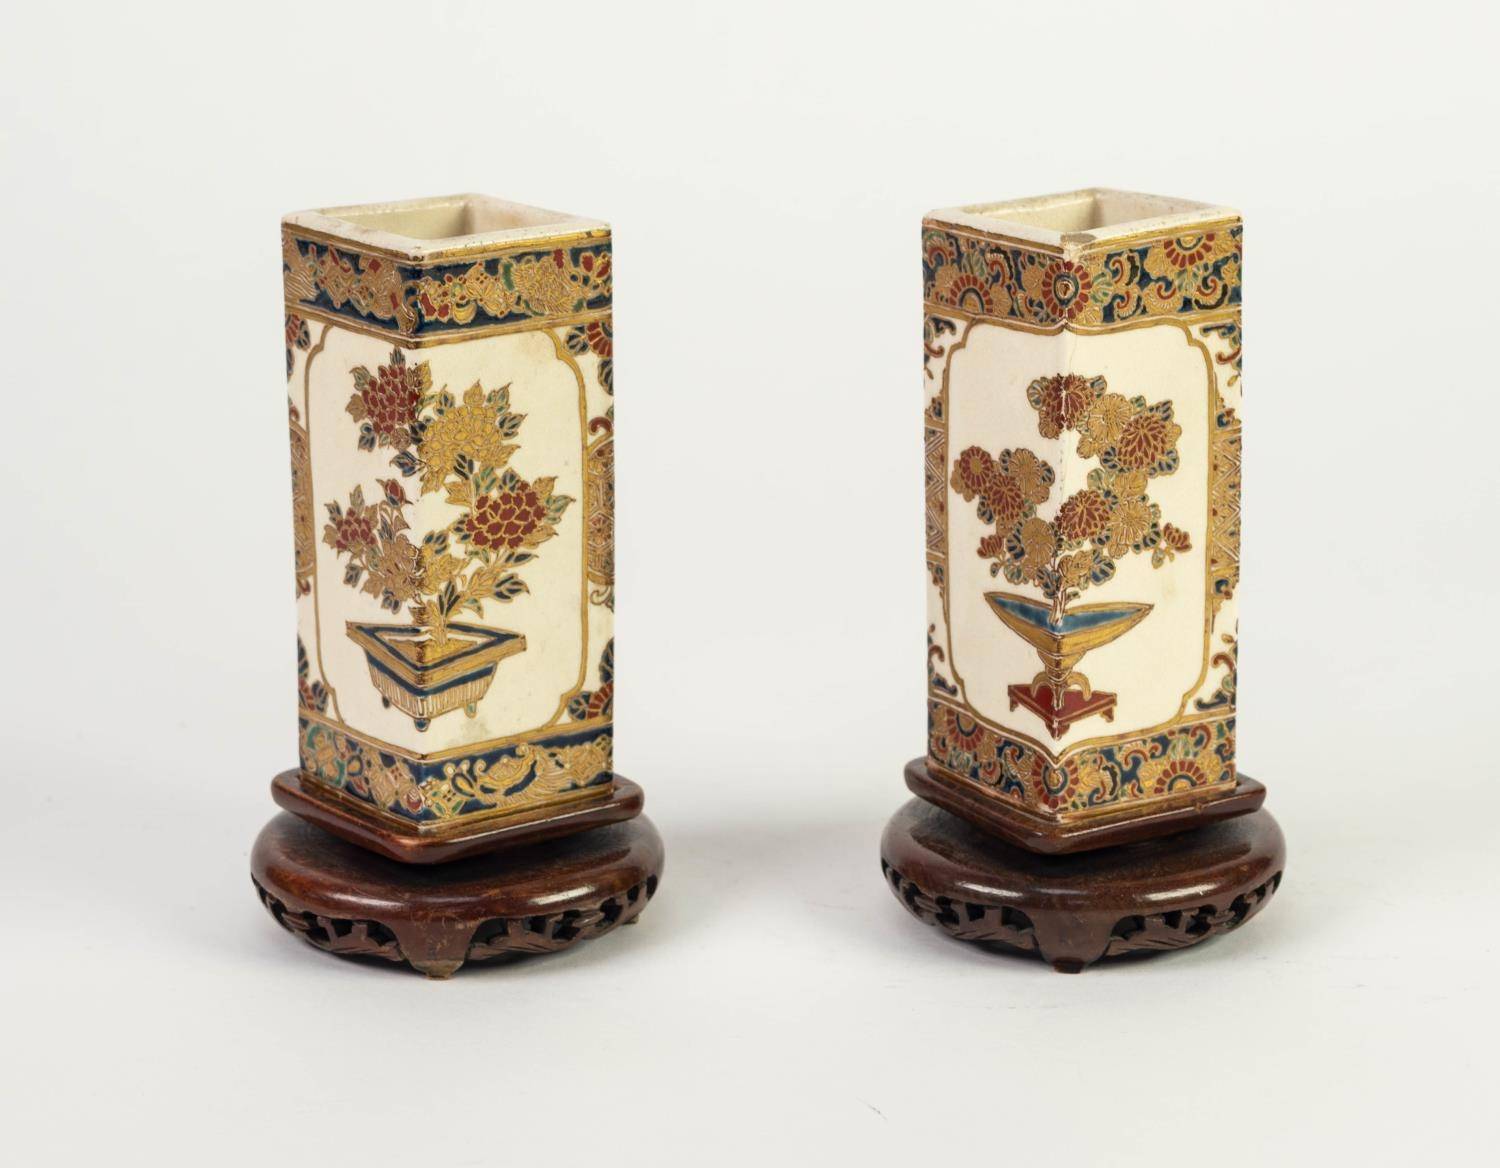 PAIR OF JAPANESE MEIJI PERIOD SATSUMA POTTERY SQUARE SECTION SMALL VASES, each painted with